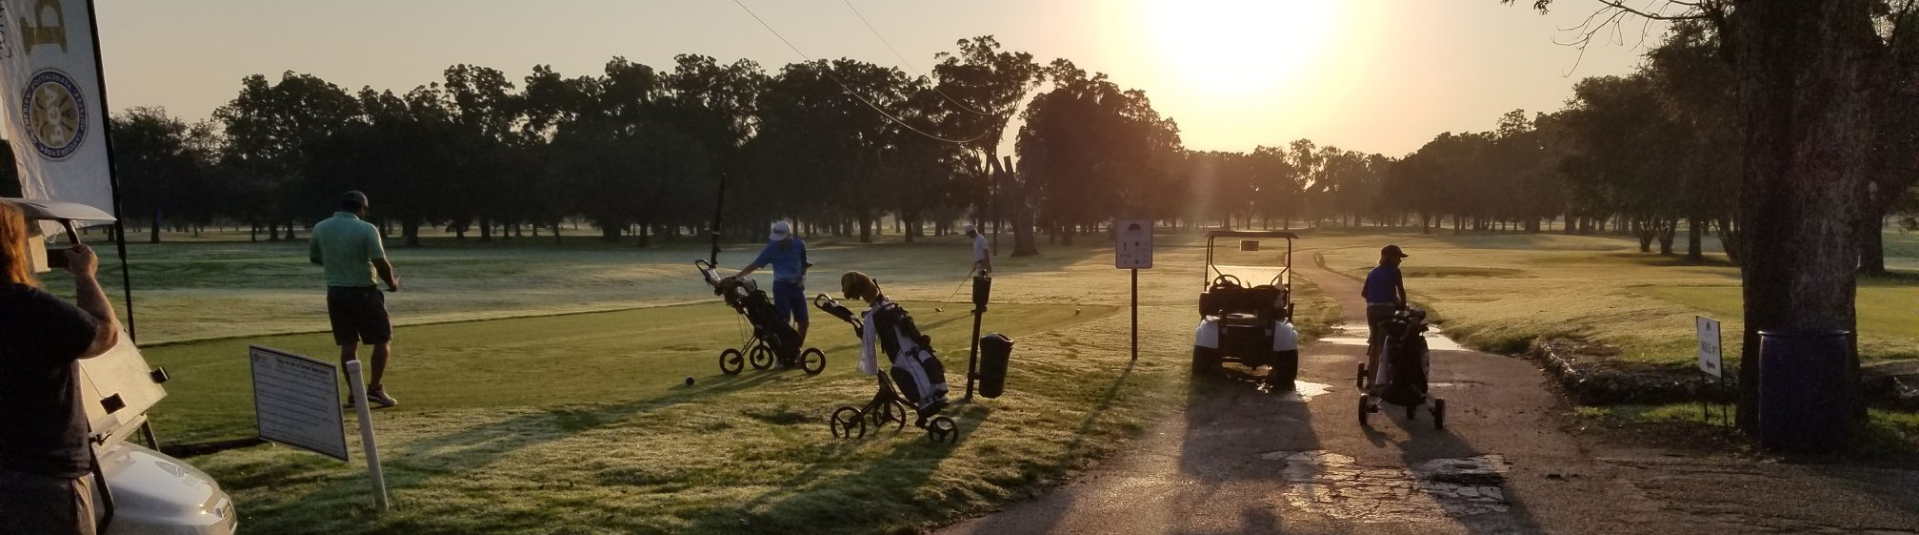 A few golfers golf during dusk at the Riverside Golf Course in Victoria, Texas